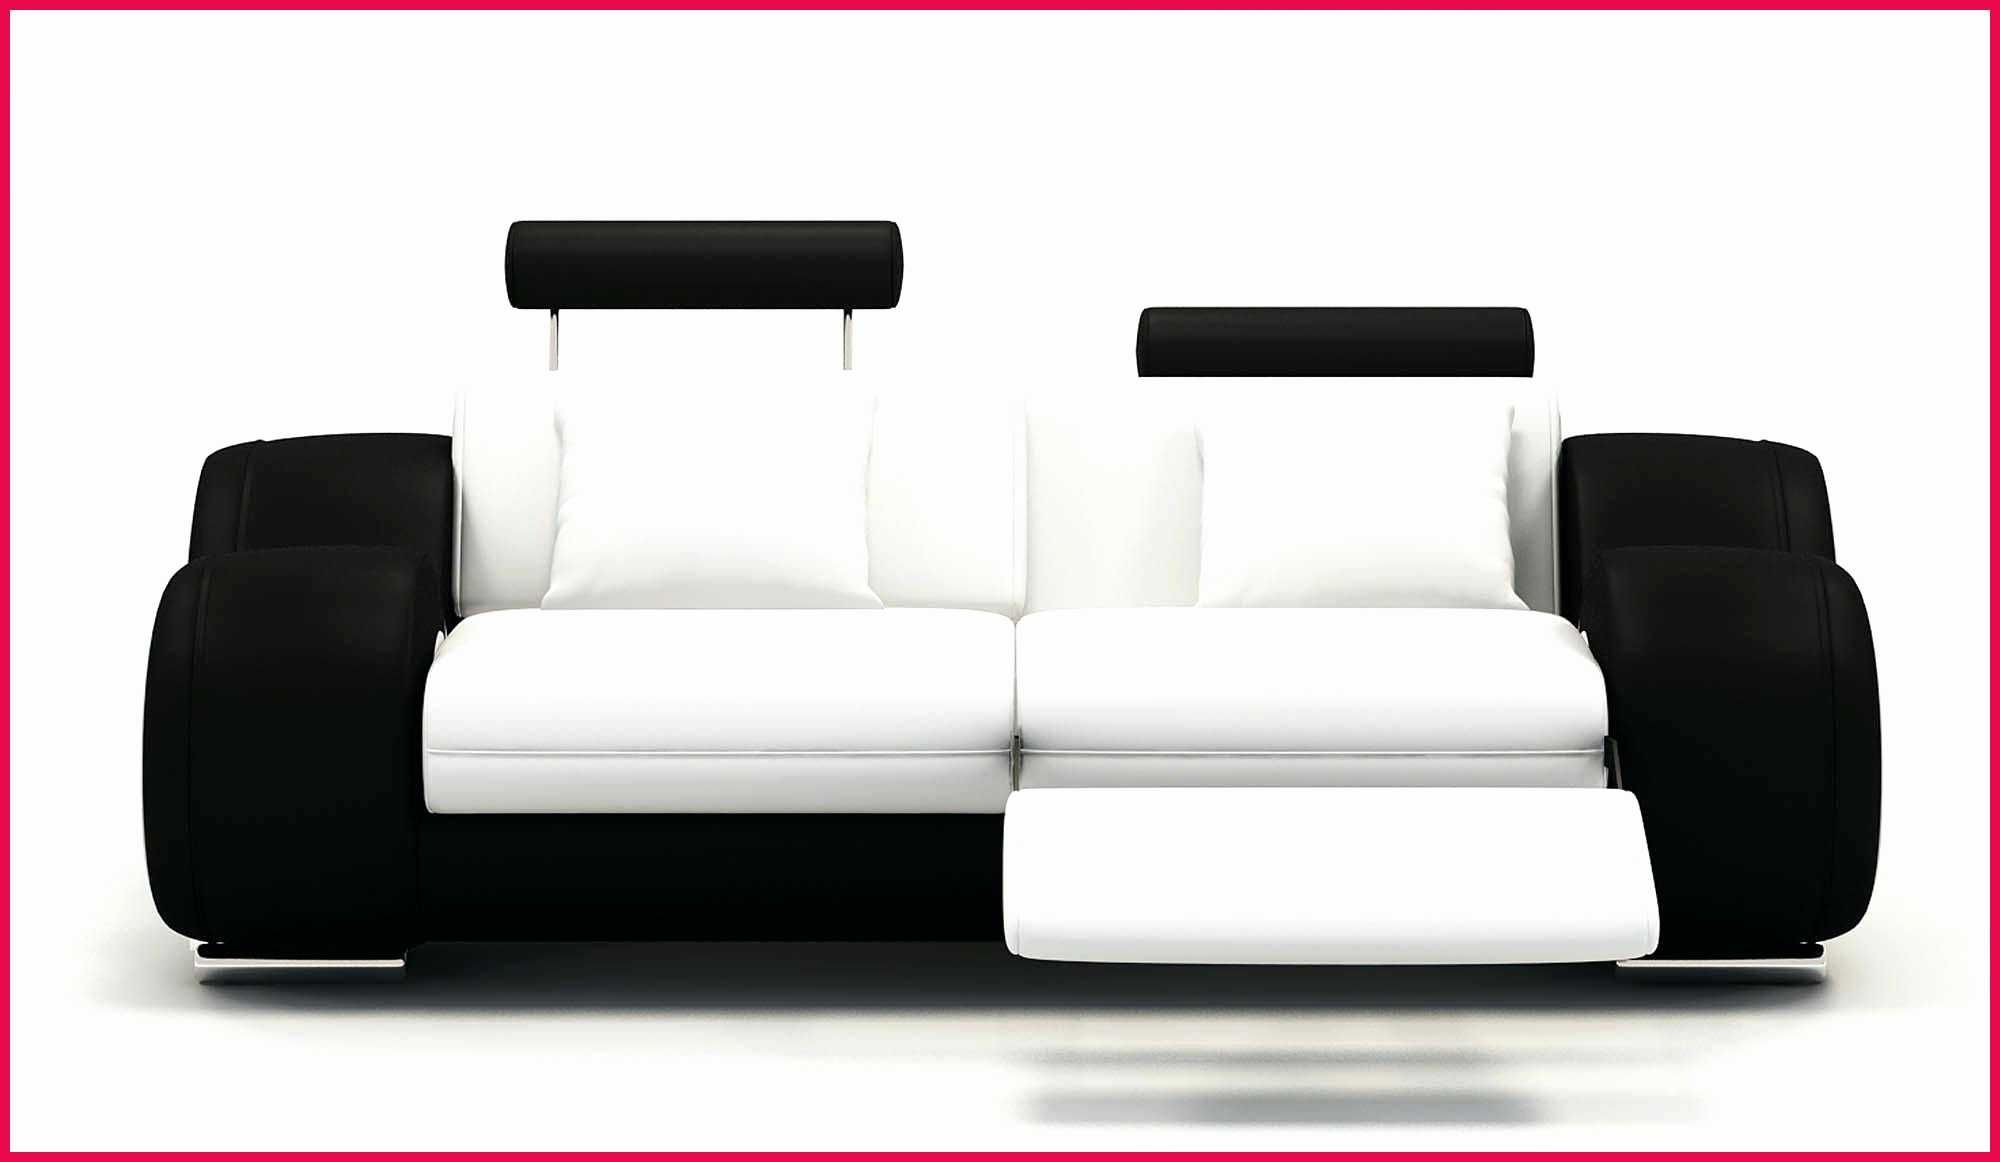 Sillon Relax Conforama Drdp sofas Relax Conforama à Nico Coleccià N Charmant Canape Relax